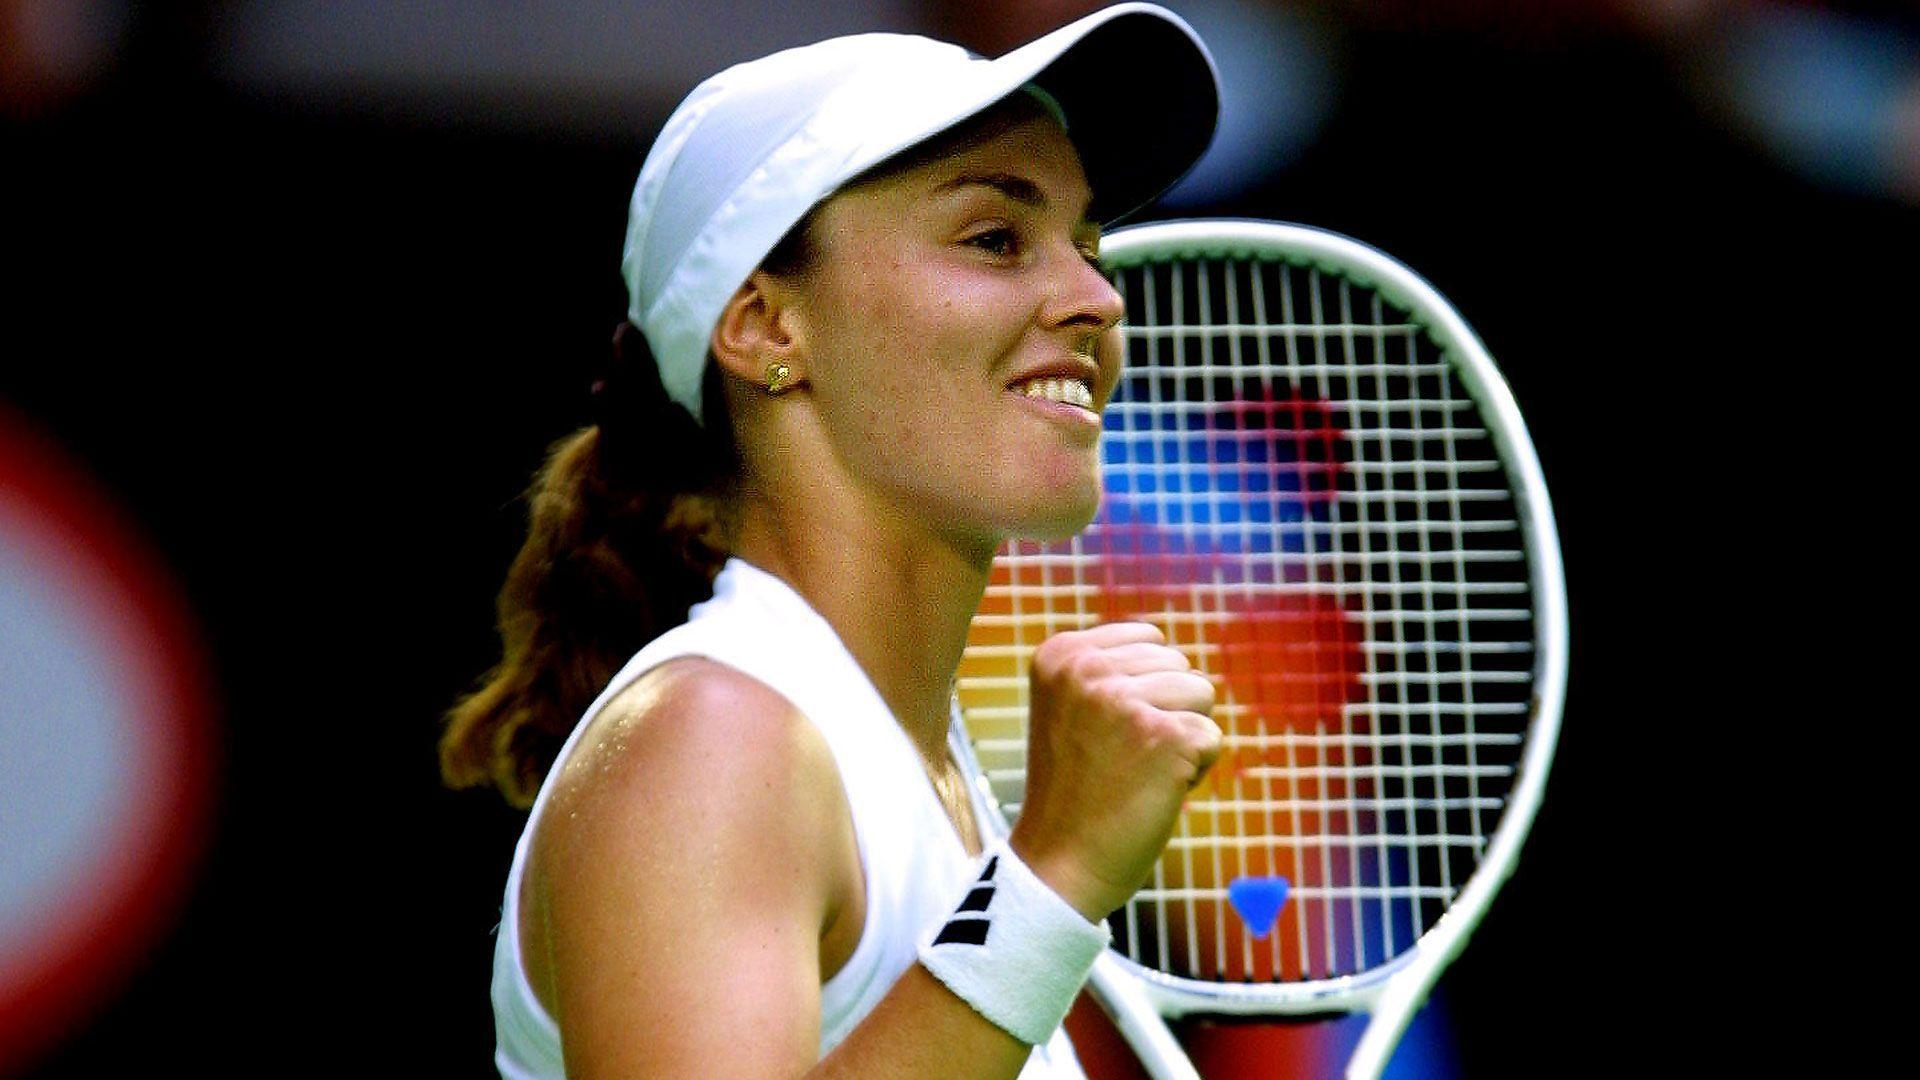 Martina Hingis Wallpapers 7